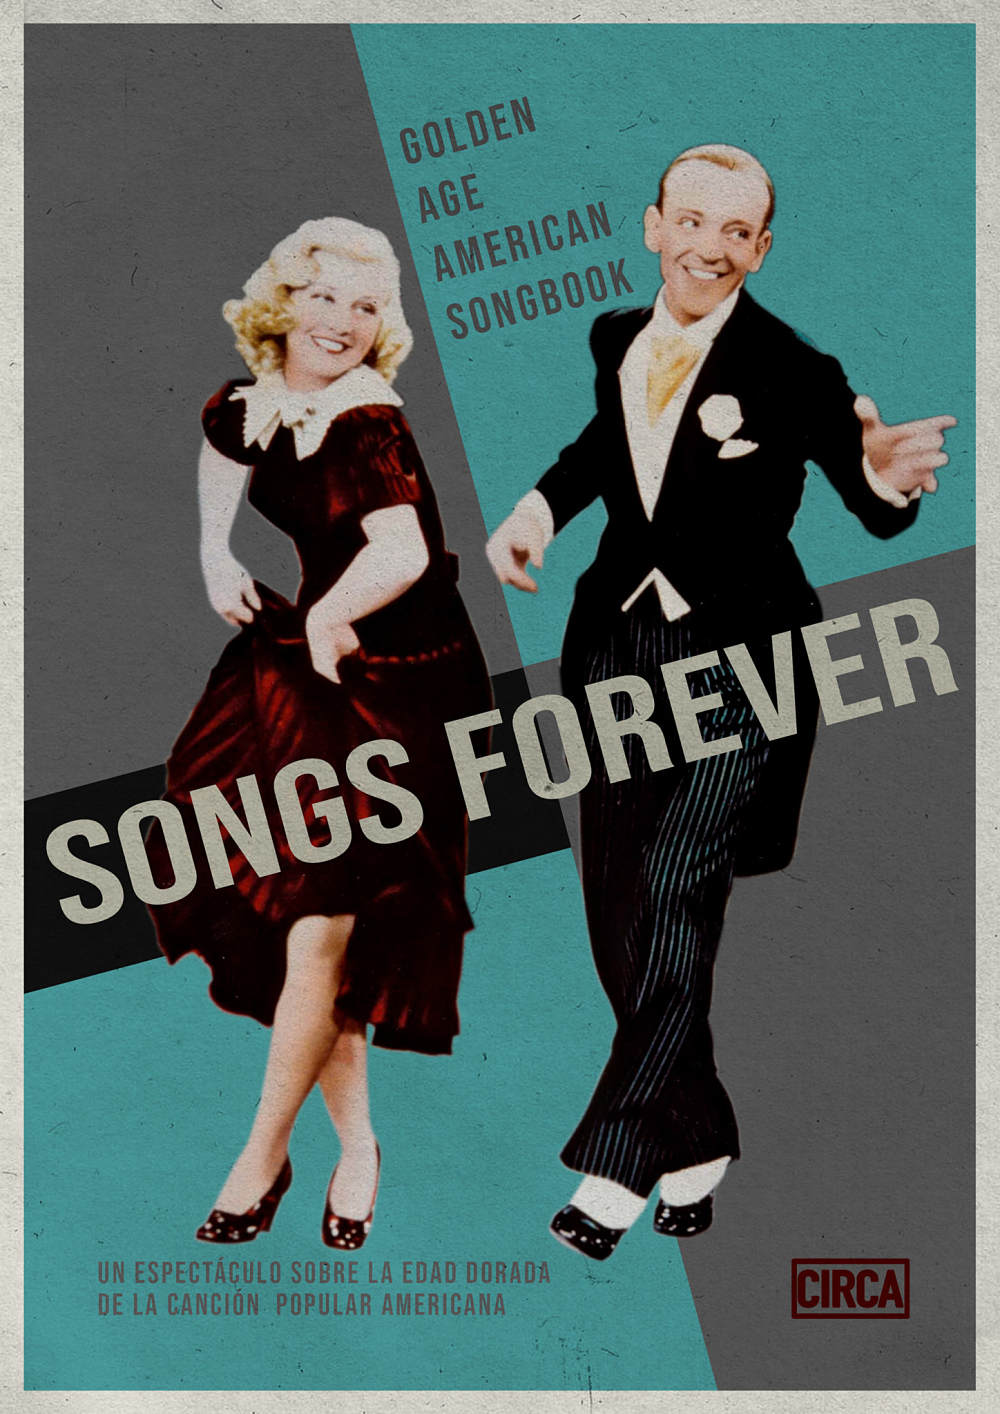 Imagen del Evento Songs Forever: Golden Age American Songbook